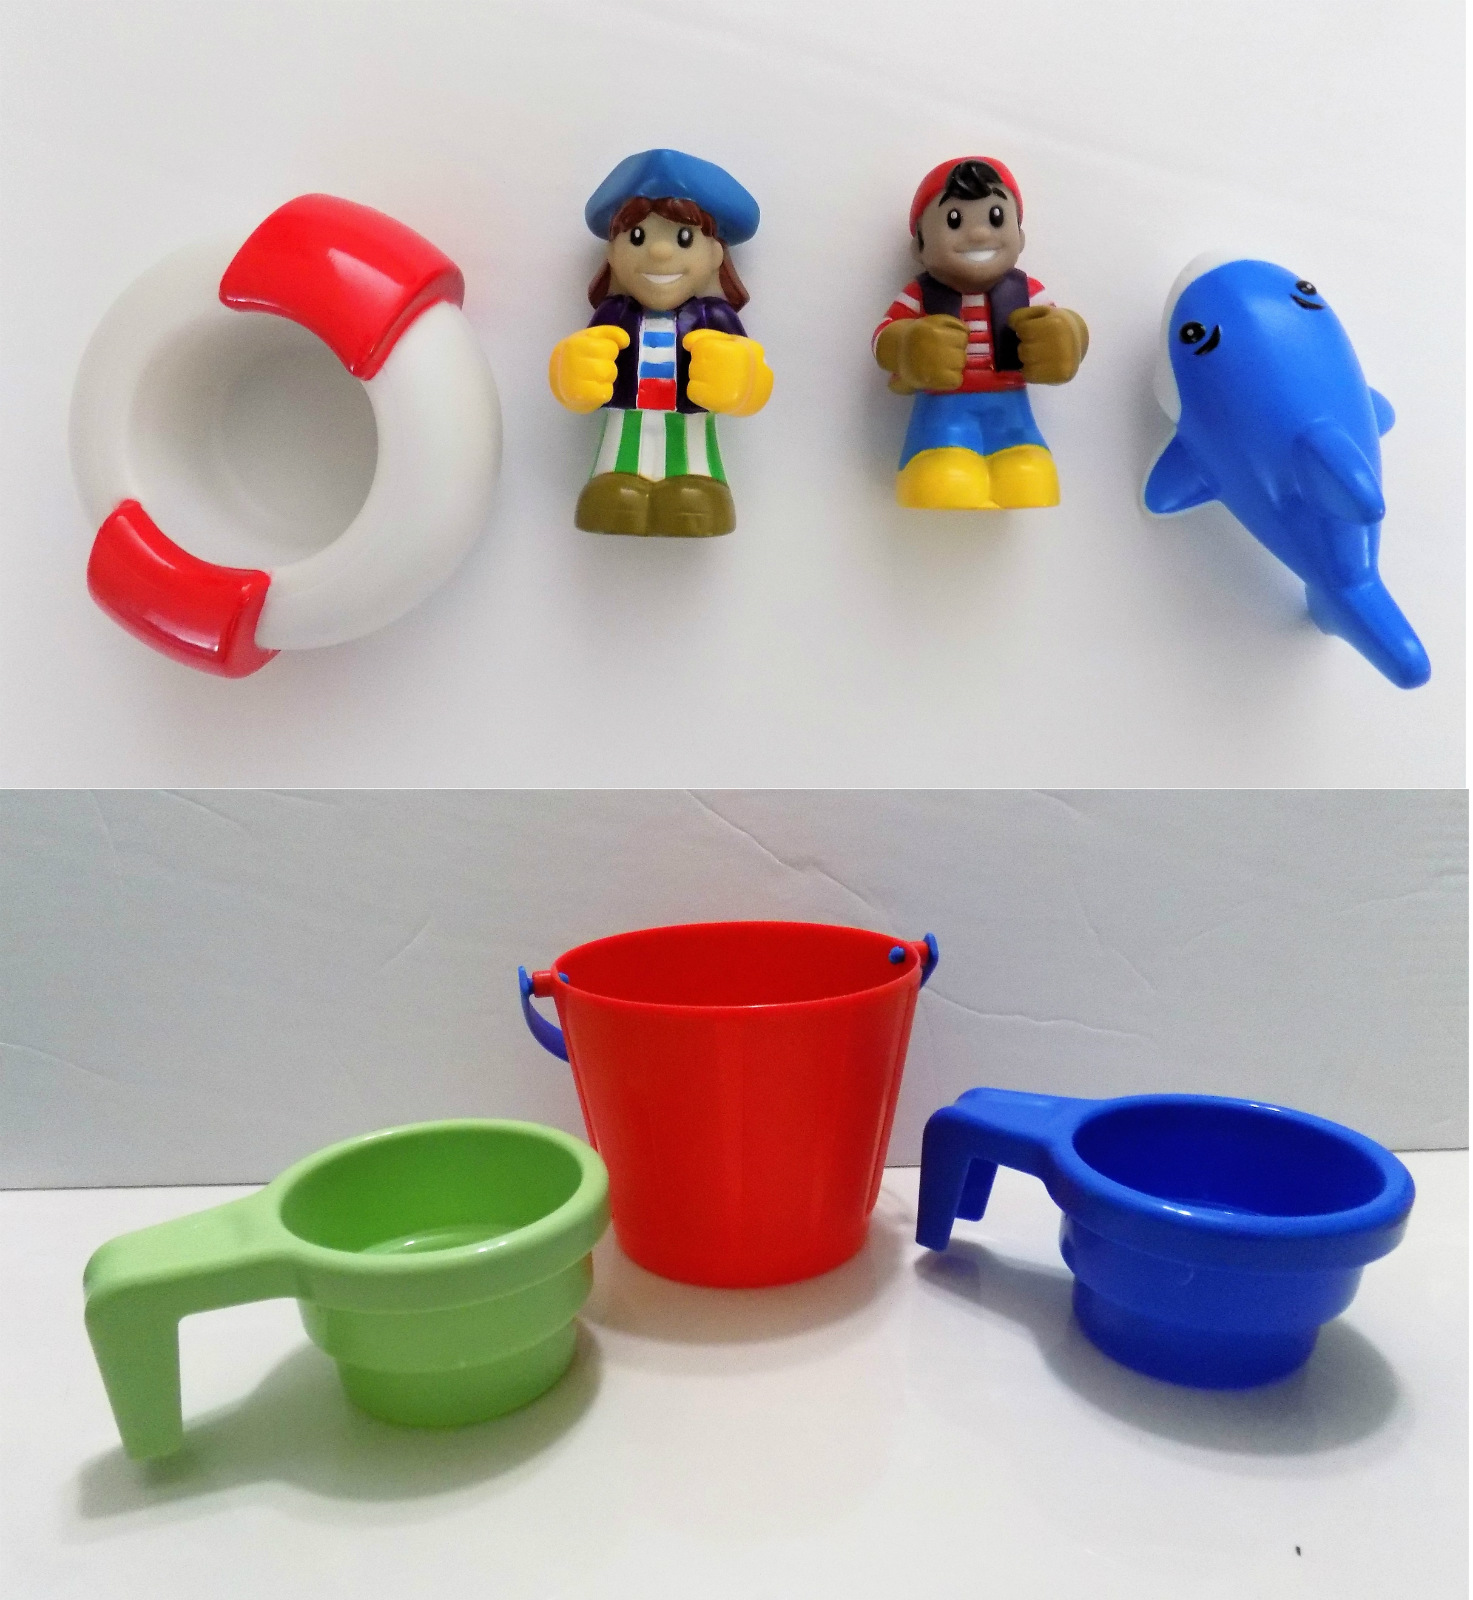 Frog Water Table For Little Tikes Replacement Parts : Little tikes anchors away pirate ship water table figures